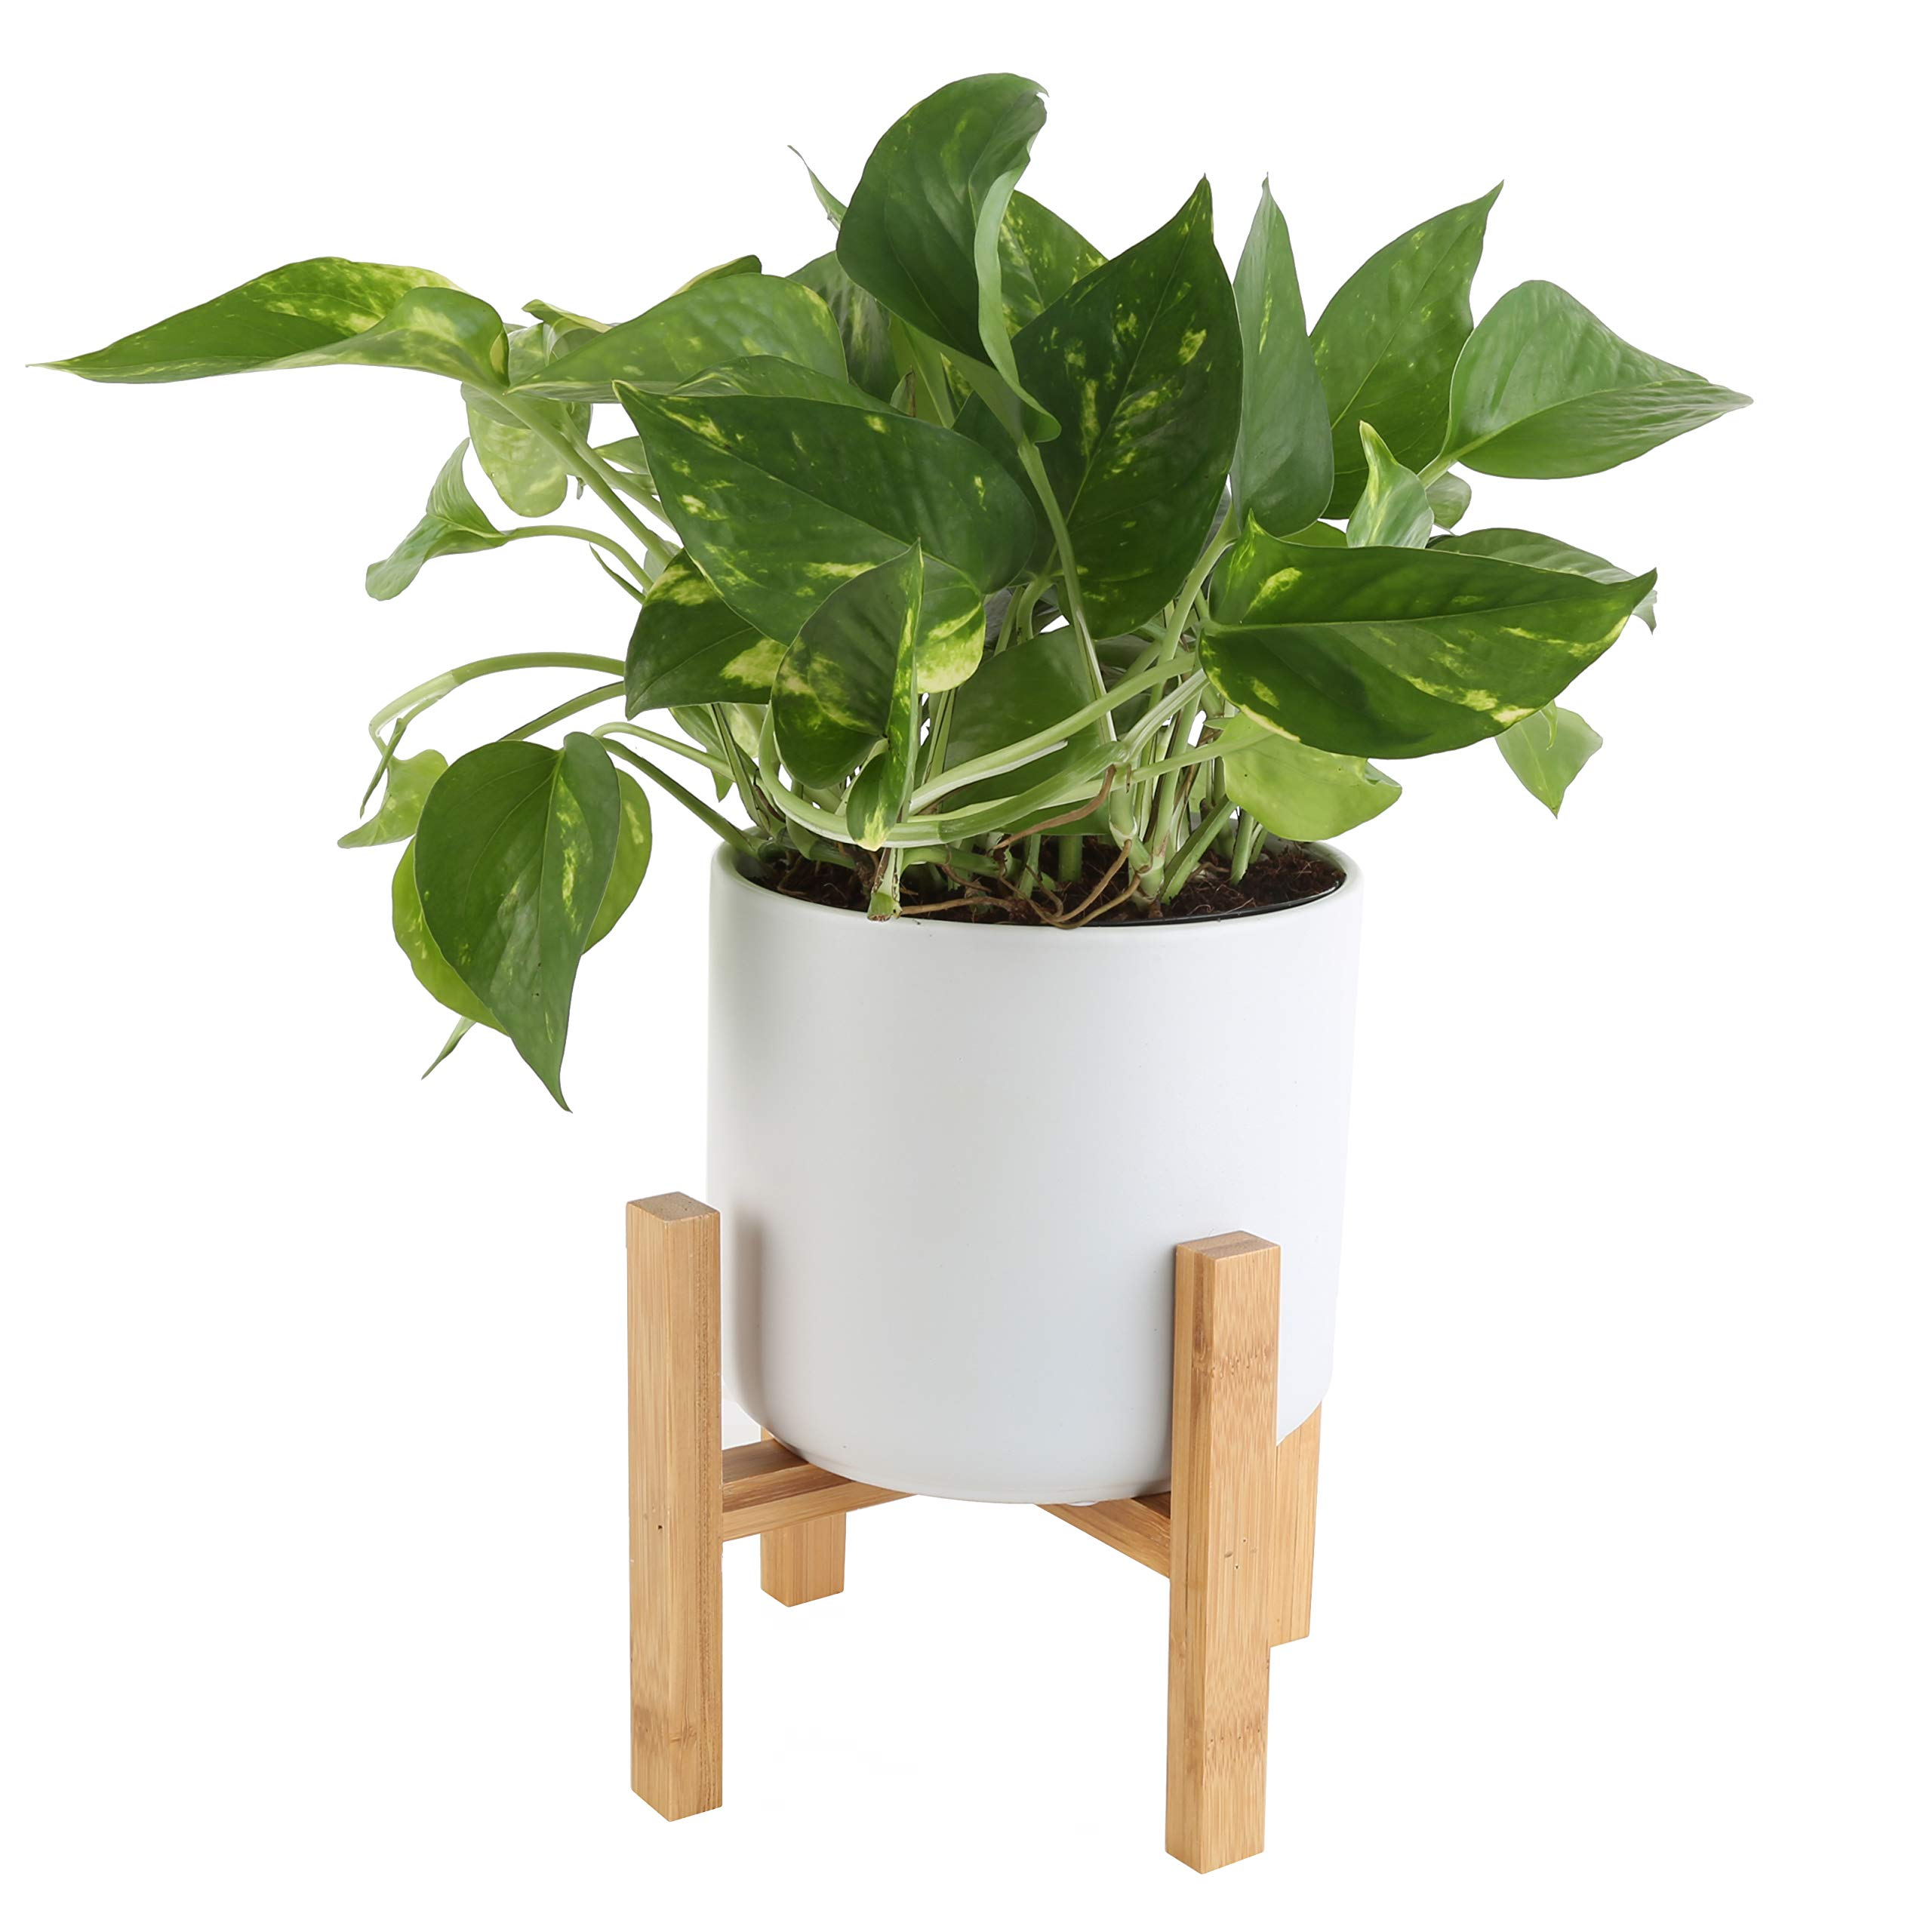 Costa Farms Devil's Ivy, Golden Pothos with 4.25-Inch Wide Mid-Century Modern Planter and Plant Stand Set, White, Fits on Shelves, Tabletops, Counters